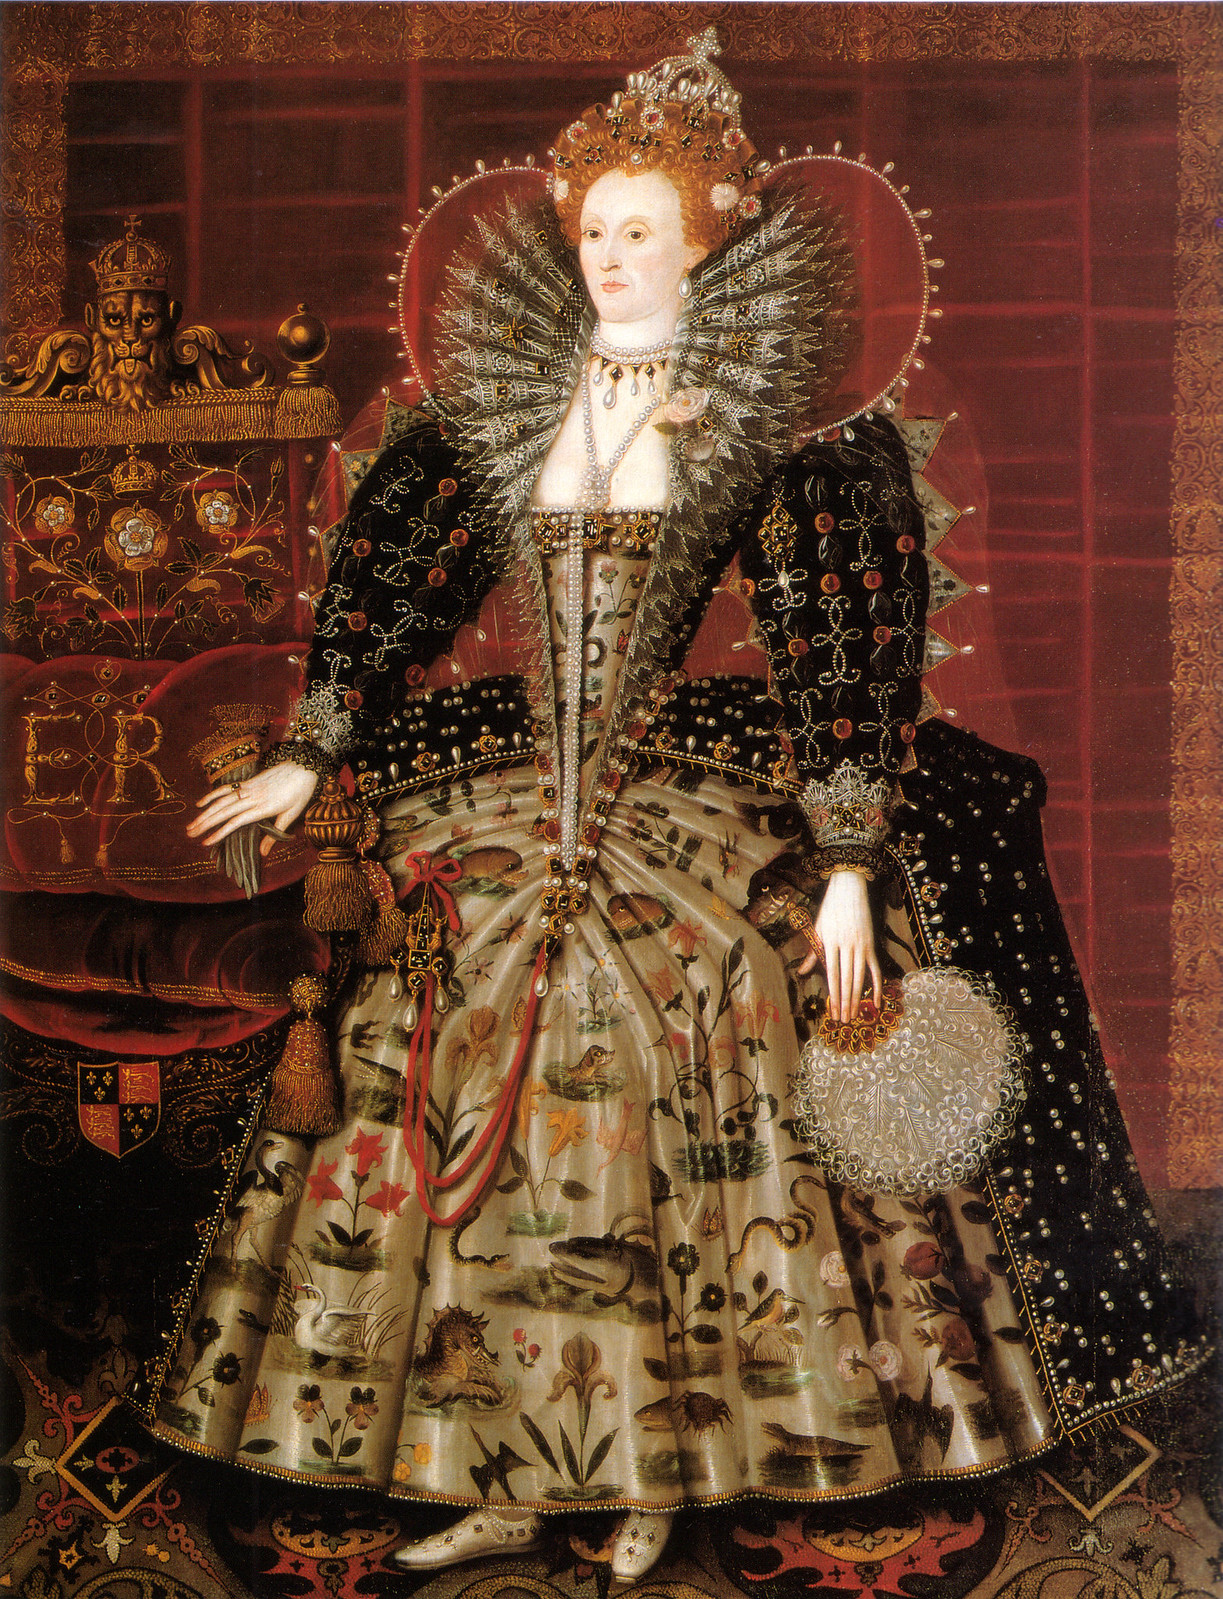 The 'Hardwick Hall' portrait of Elizabeth I of England by Nicholas Hilliard, c.1599.